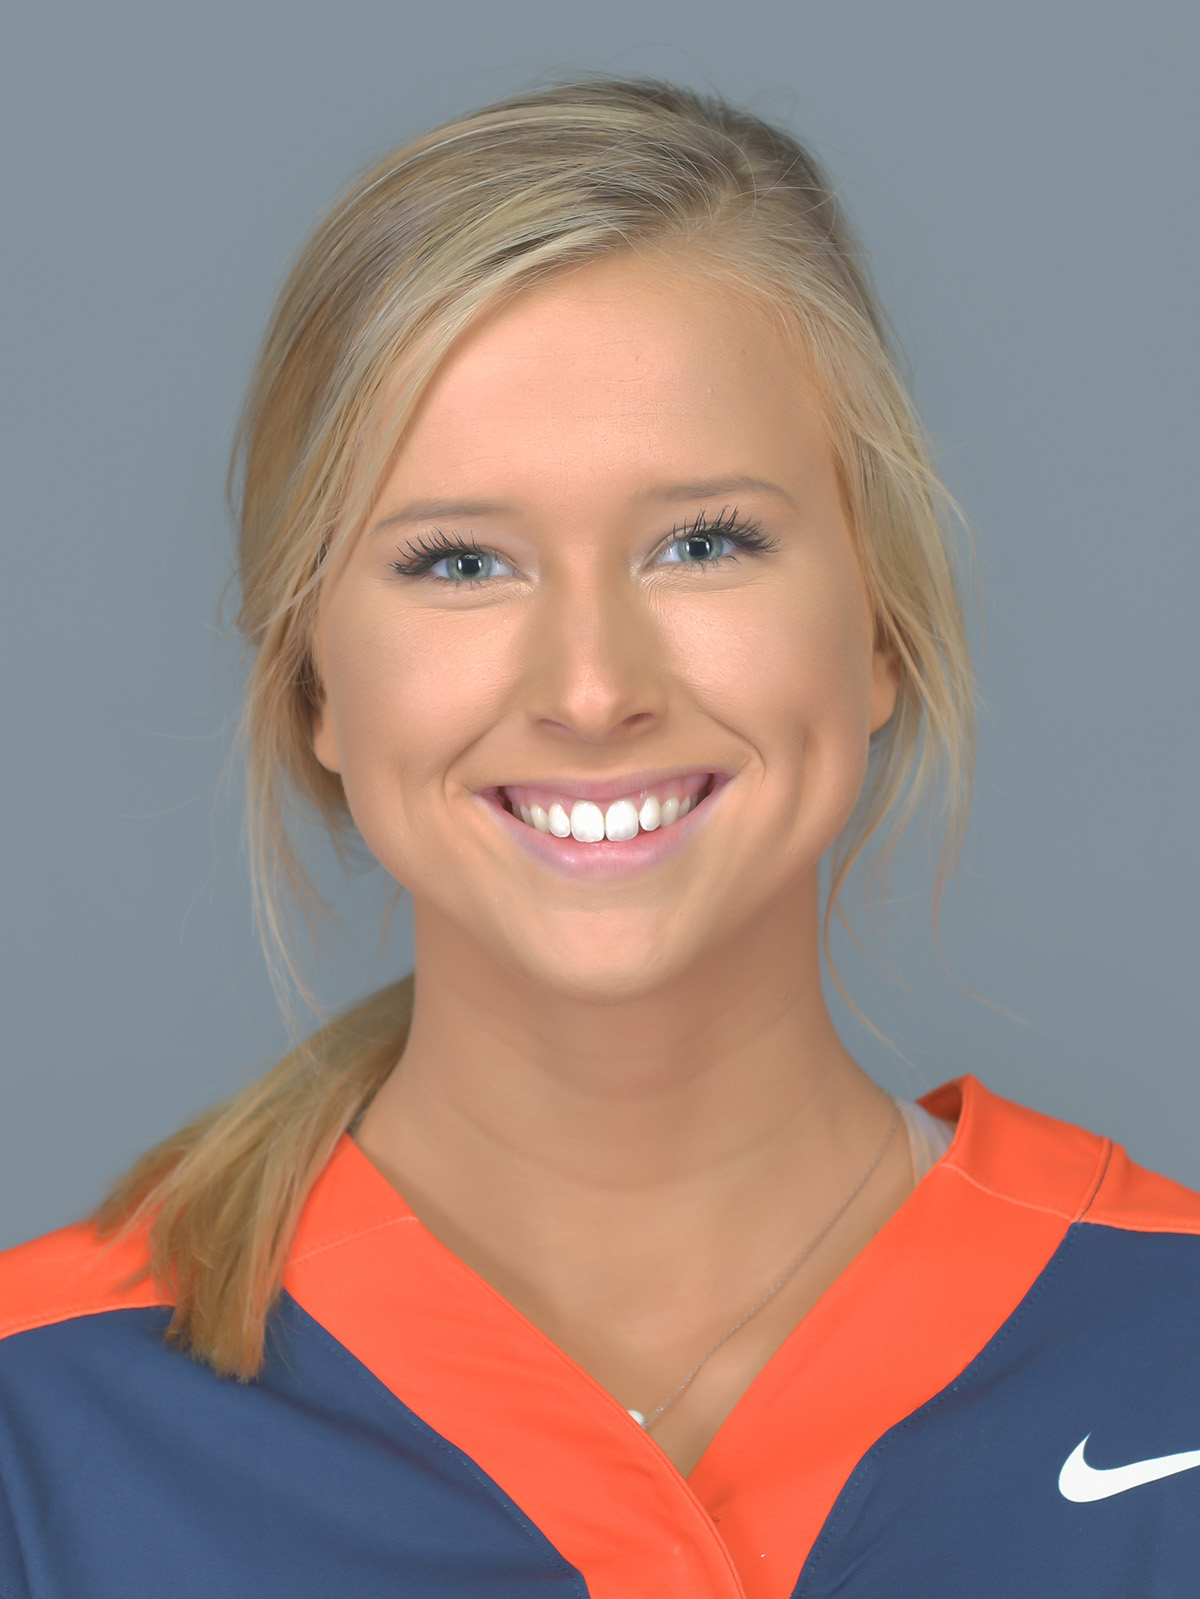 Whitney Wegener posing for a headshot